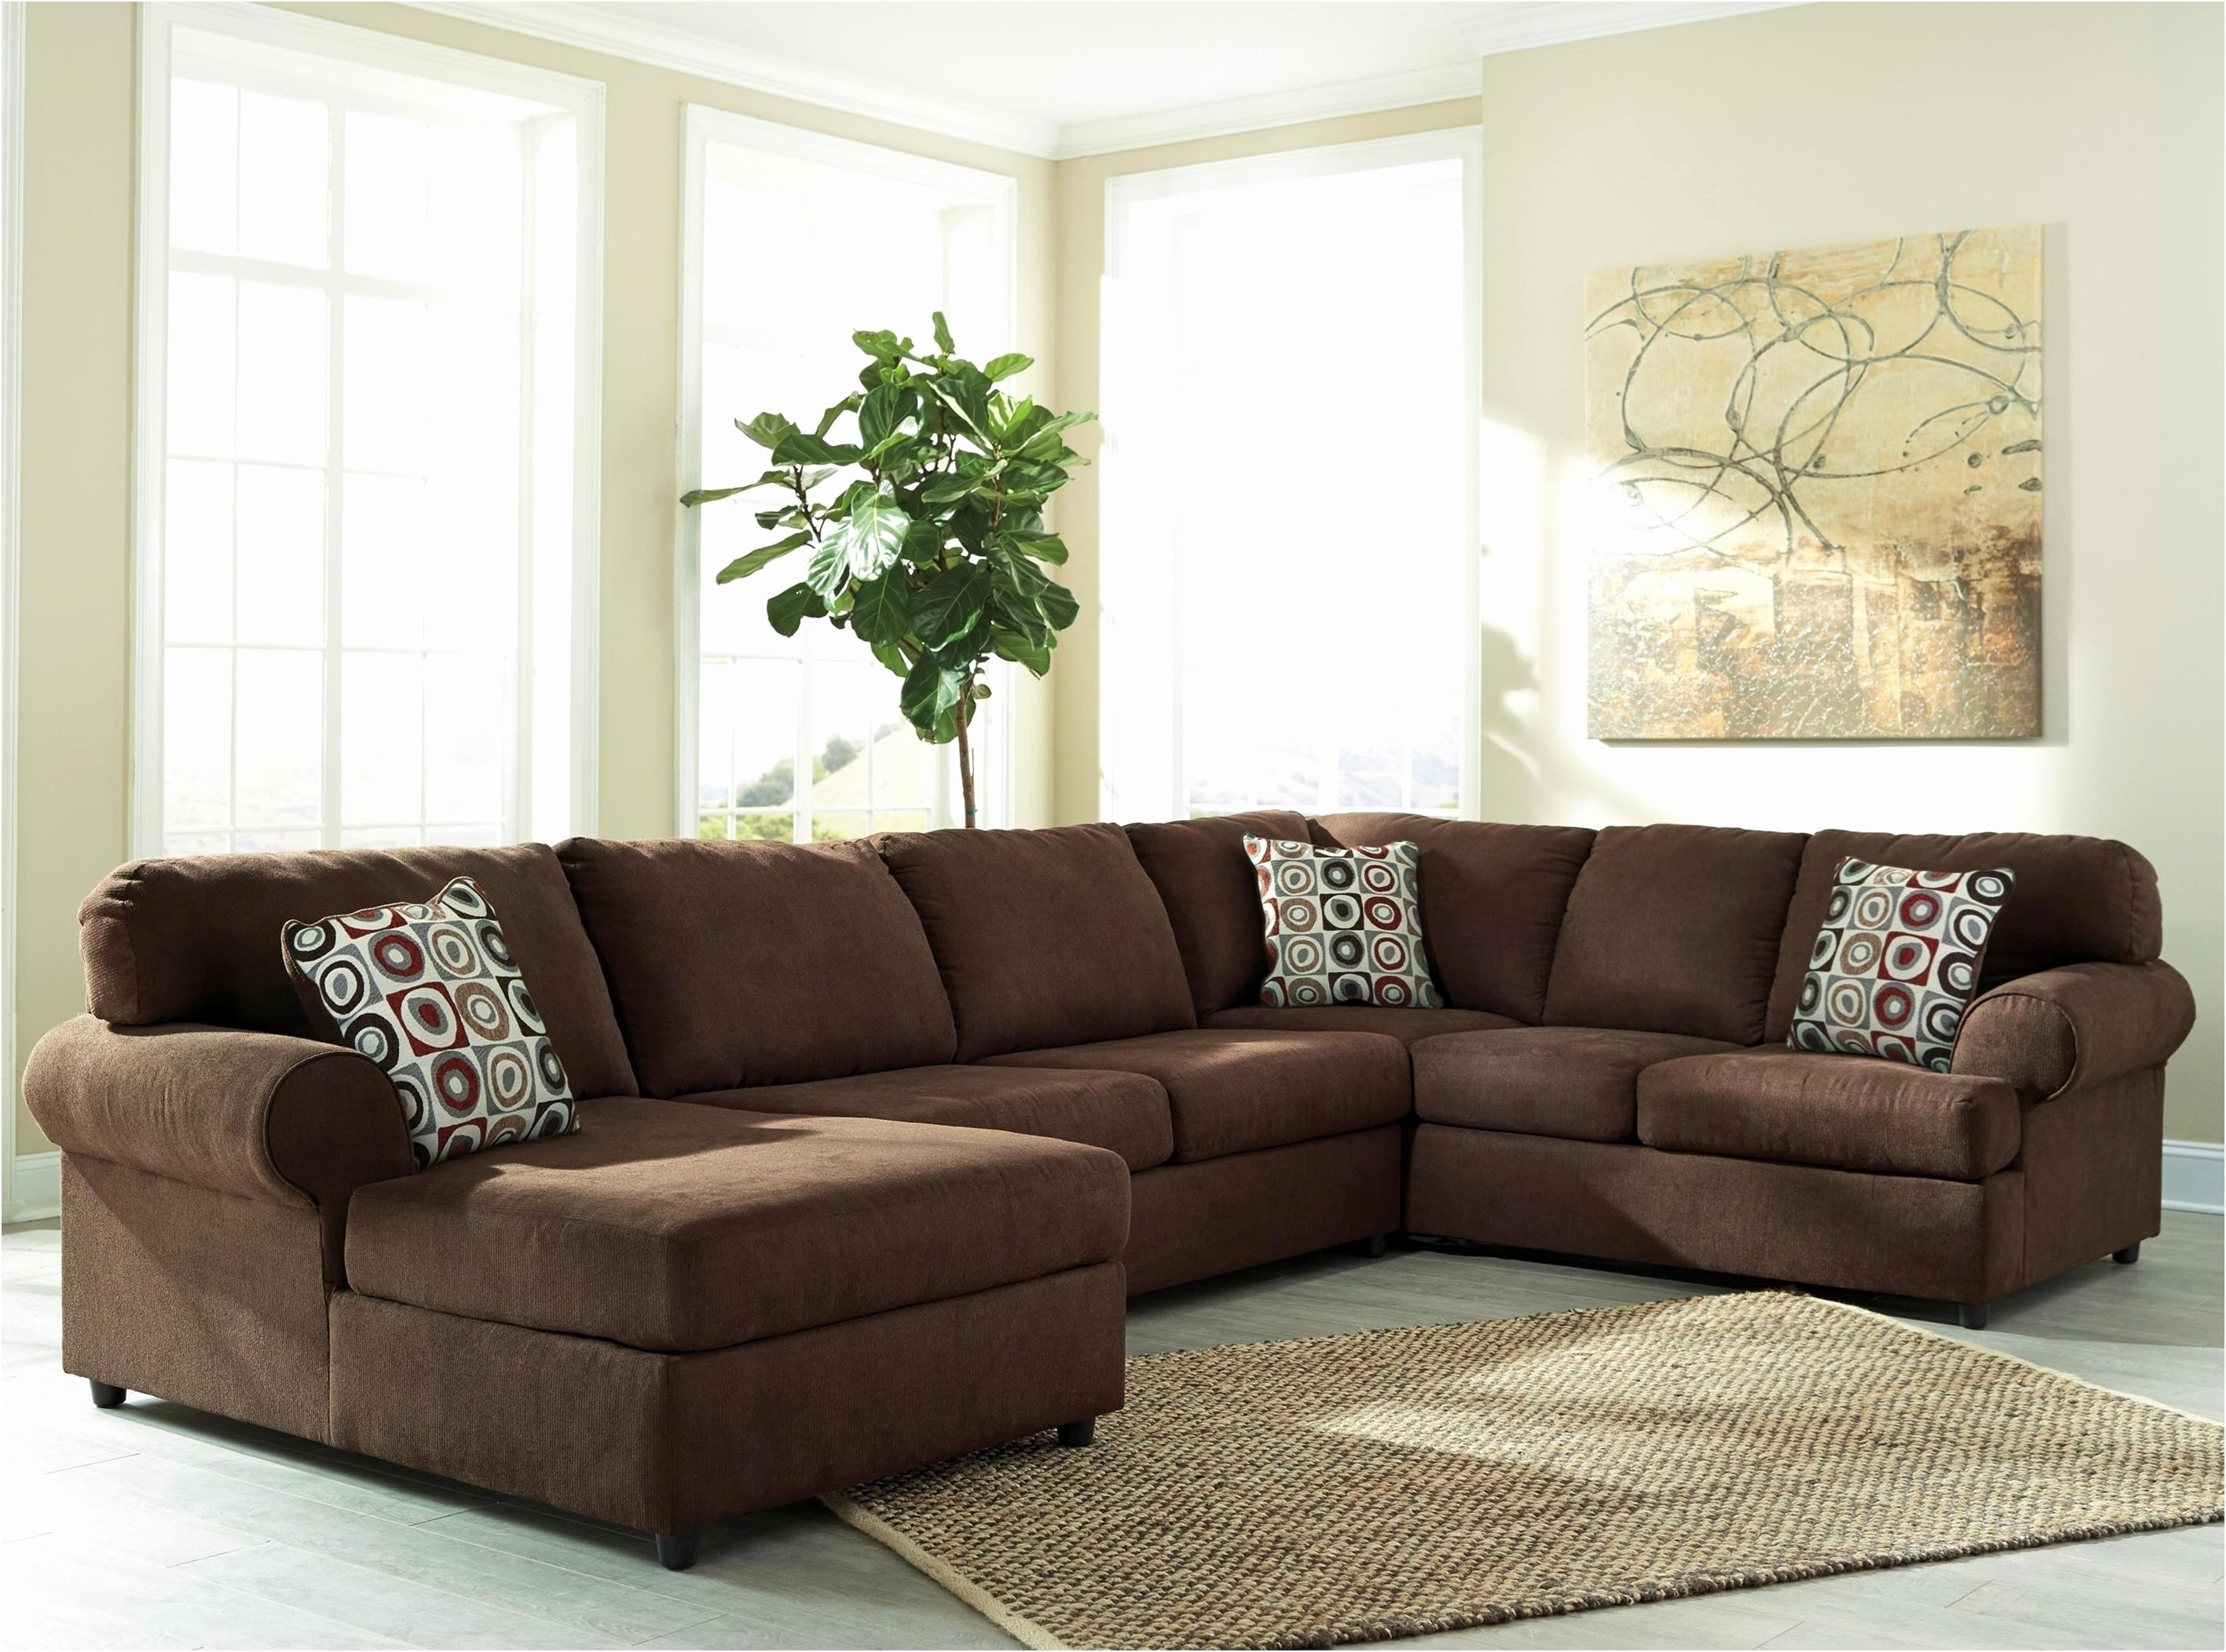 Havertys Furniture Sectionals Inspiration Probably Super Real Throughout Arrowmask 2 Piece Sectionals With Sleeper & Right Facing Chaise (View 18 of 25)